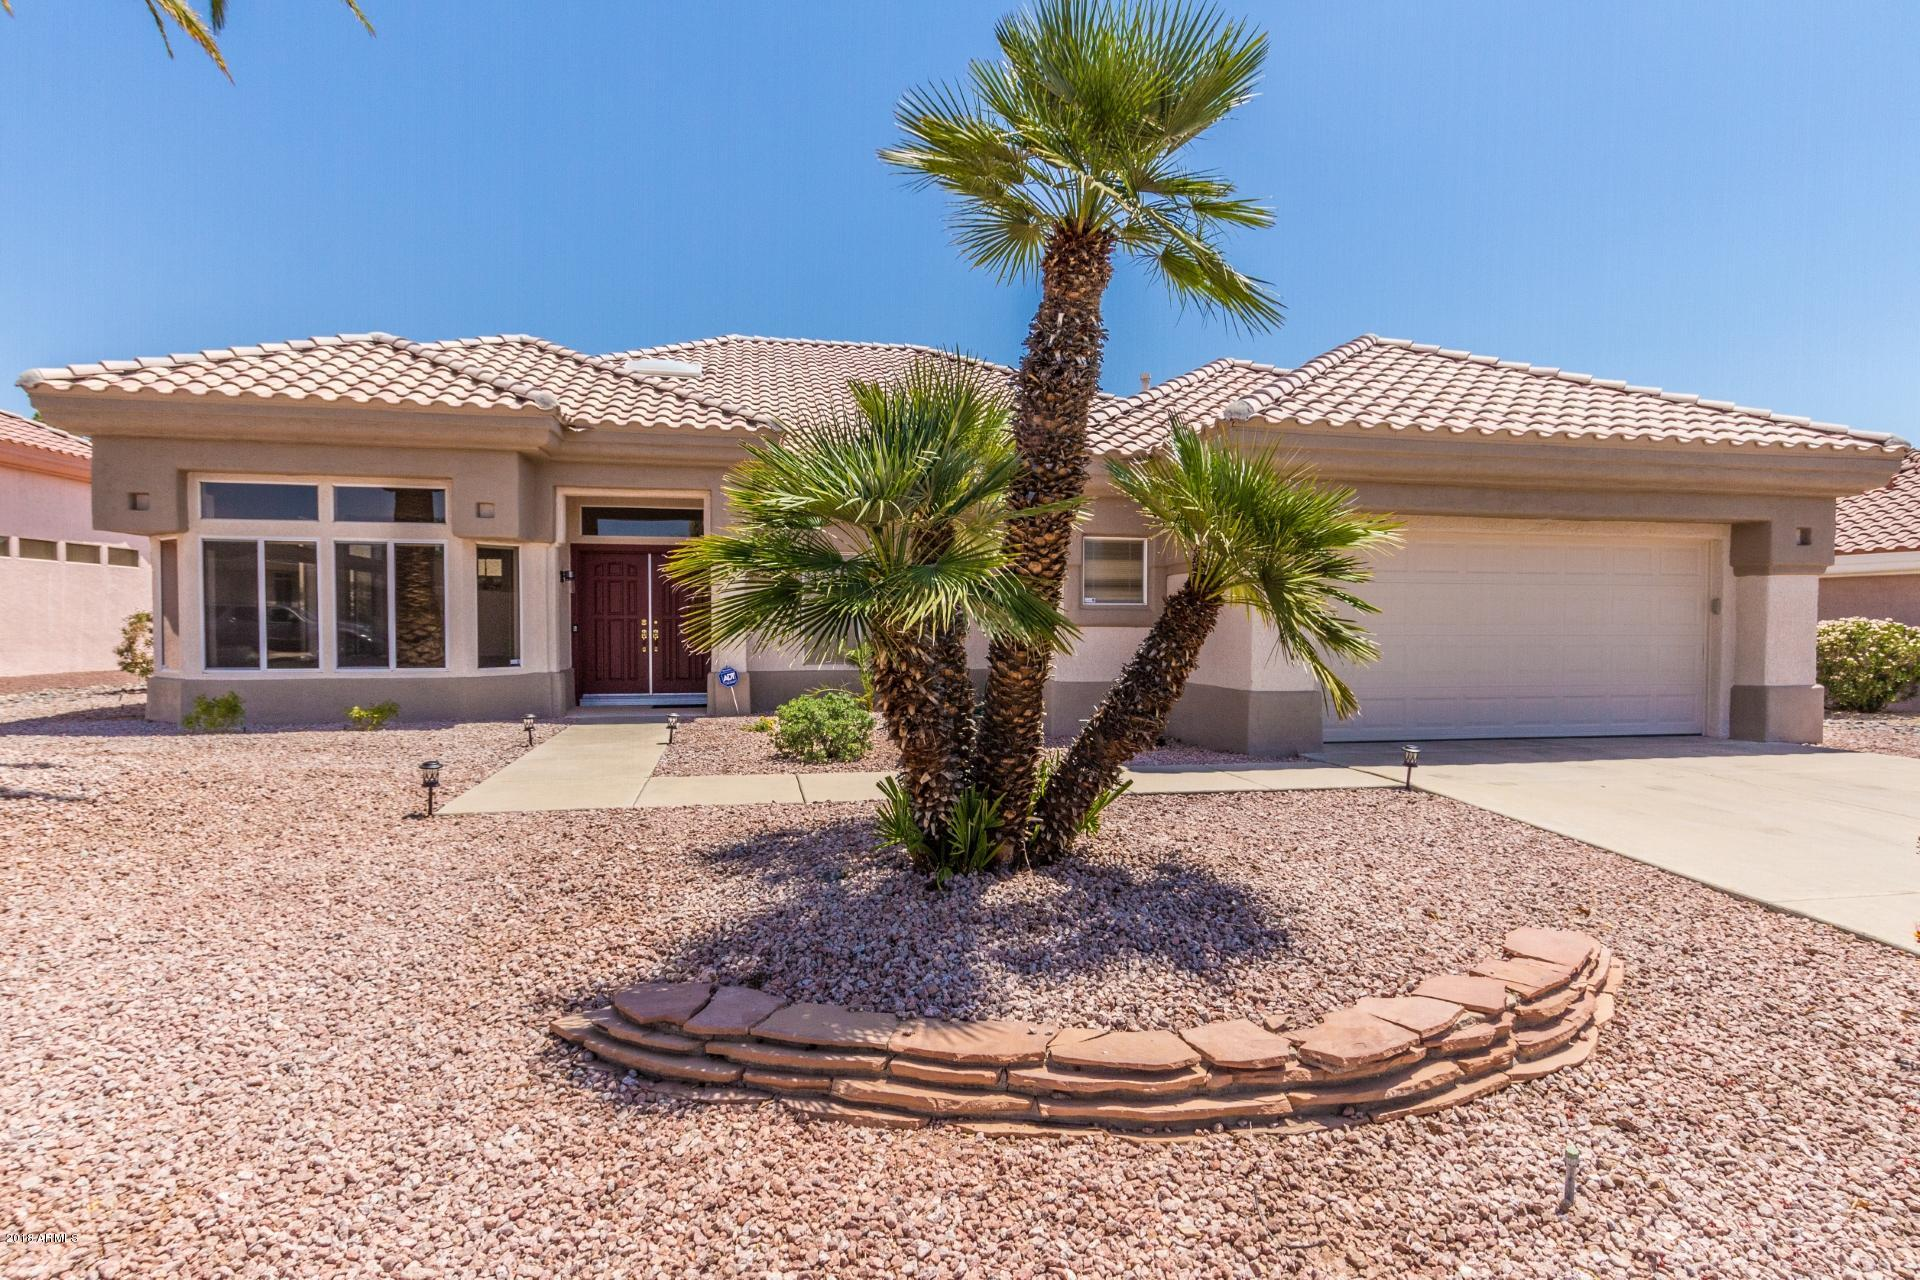 20419 N TANGLEWOOD DRIVE, SUN CITY WEST, AZ 85375